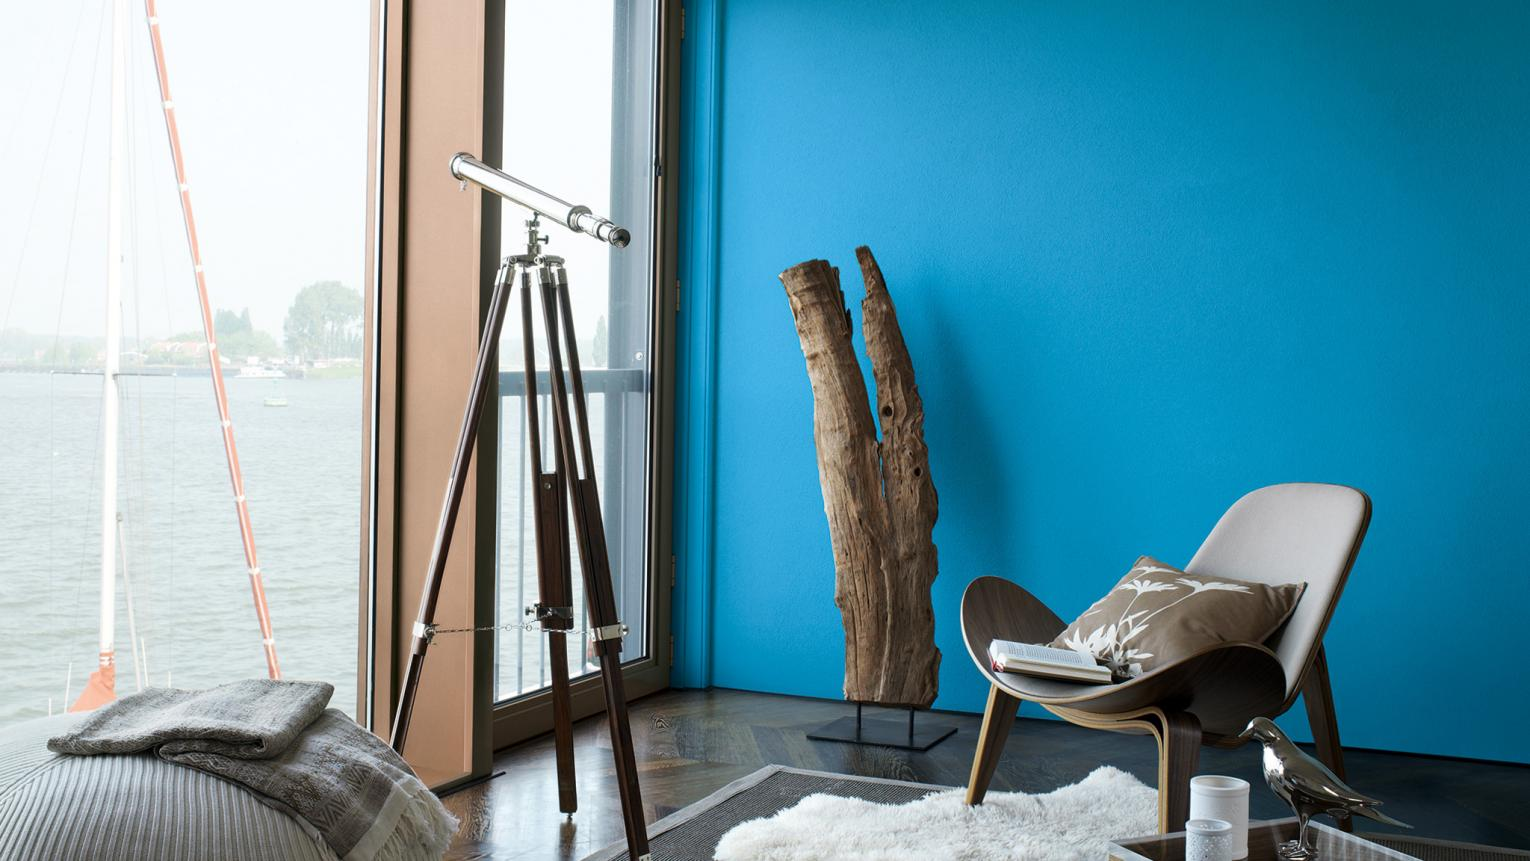 The colour of a swimming pool on a hot summer's day, cerulean blue works as an accent in all rooms of the home.